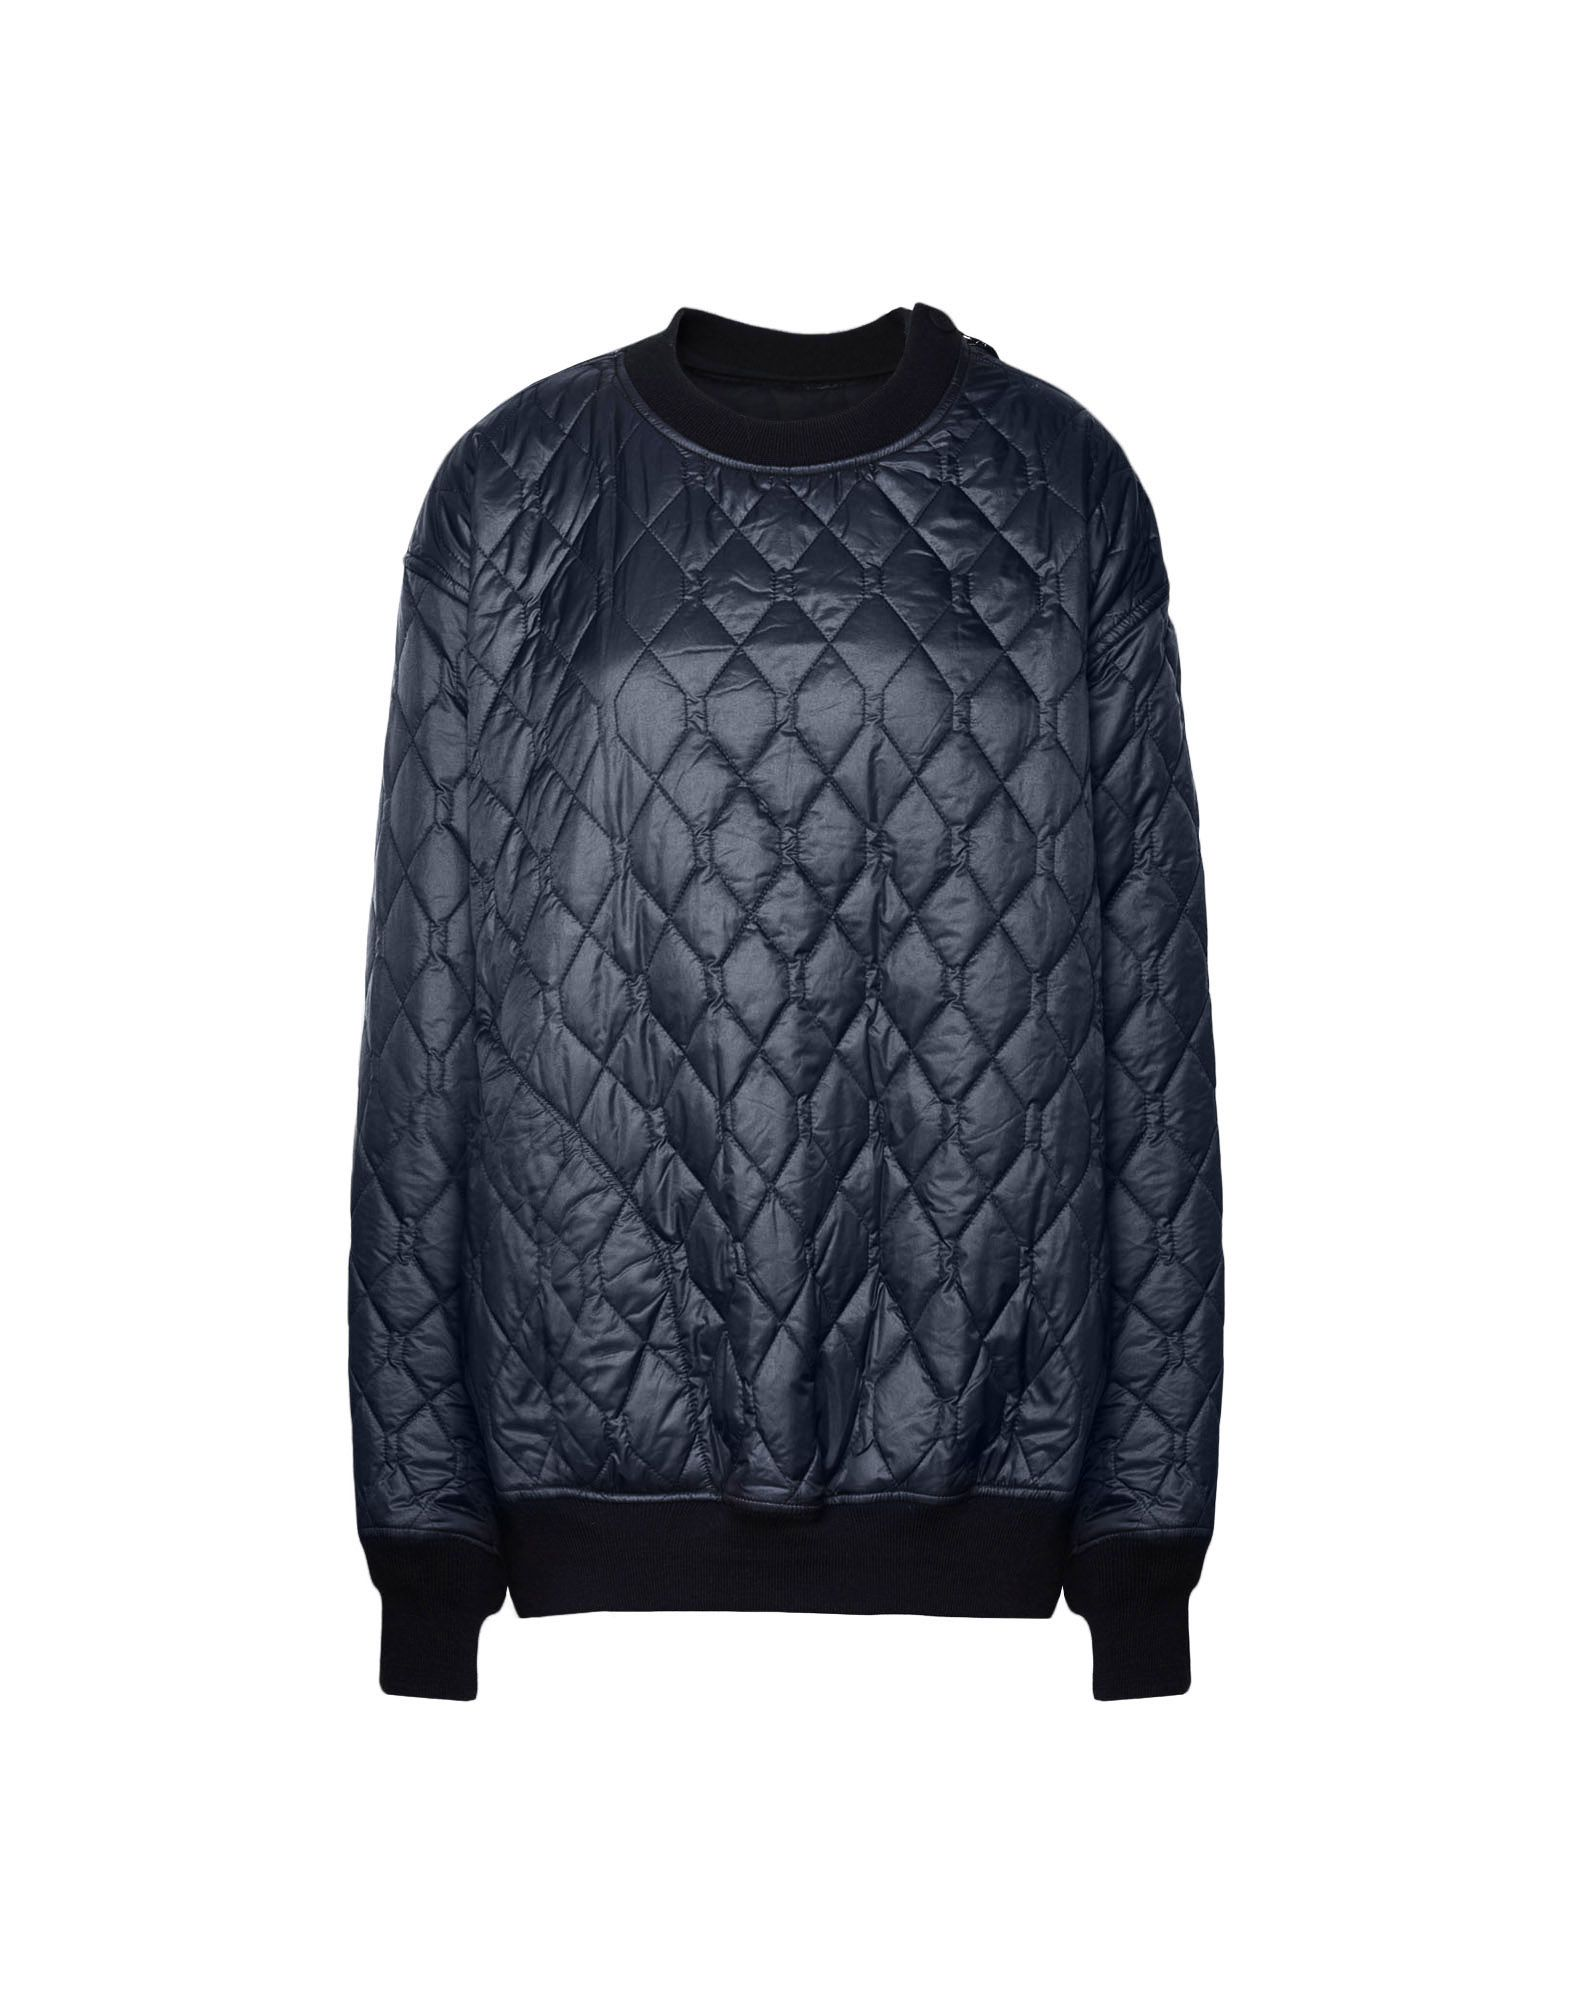 Y-3 Y-3 Quilted Sweater Sweatshirt Woman f